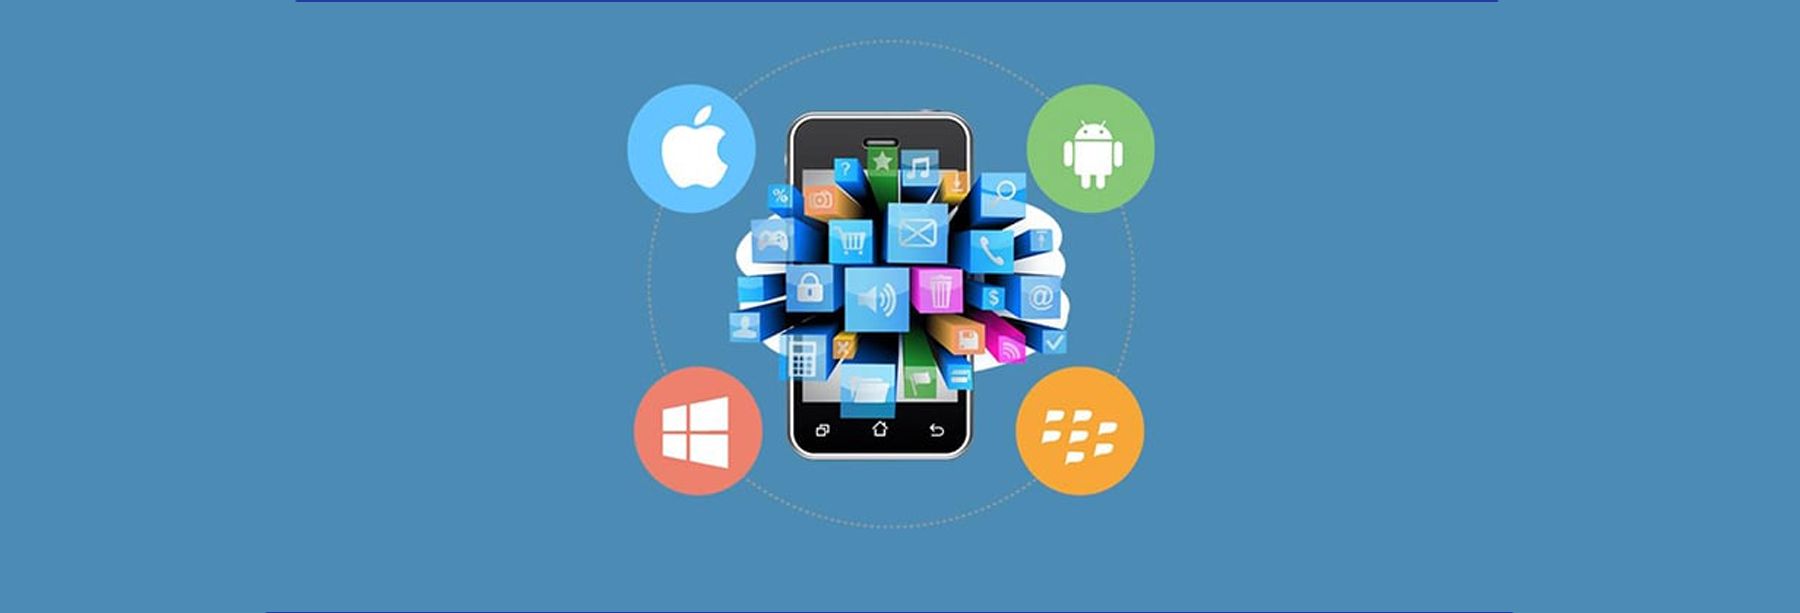 is-hybrid-app-development-a-gimmick-or-is-it-here-to-stay